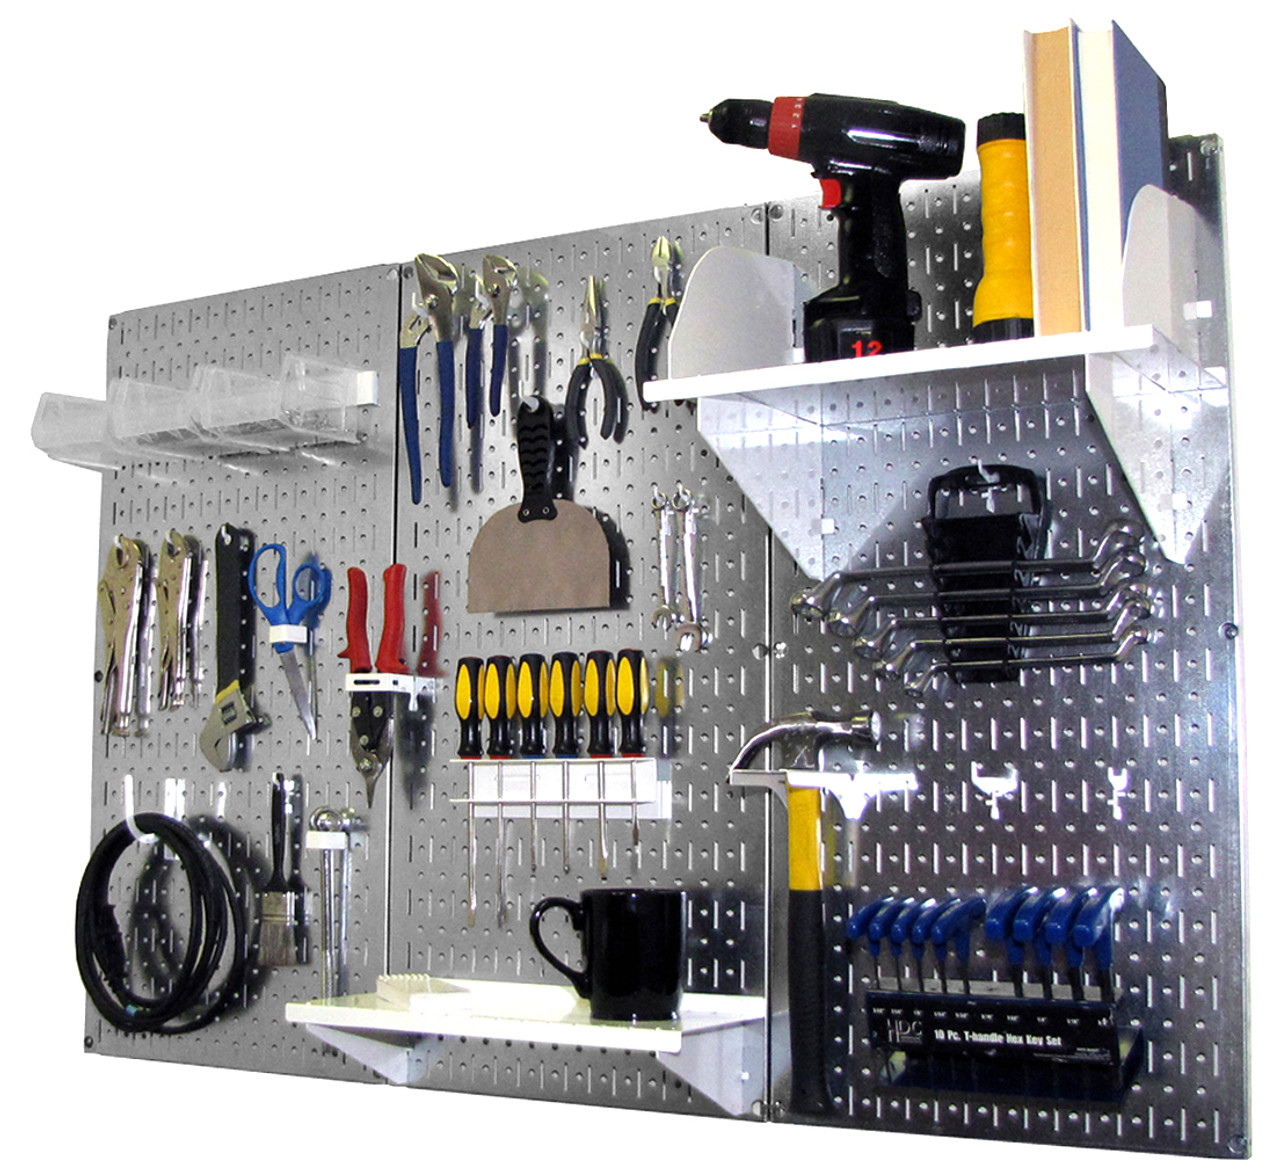 Wall Control Metal Pegboard Makes Great Shadow Board For: Steel Pegboard Workbench Organizer